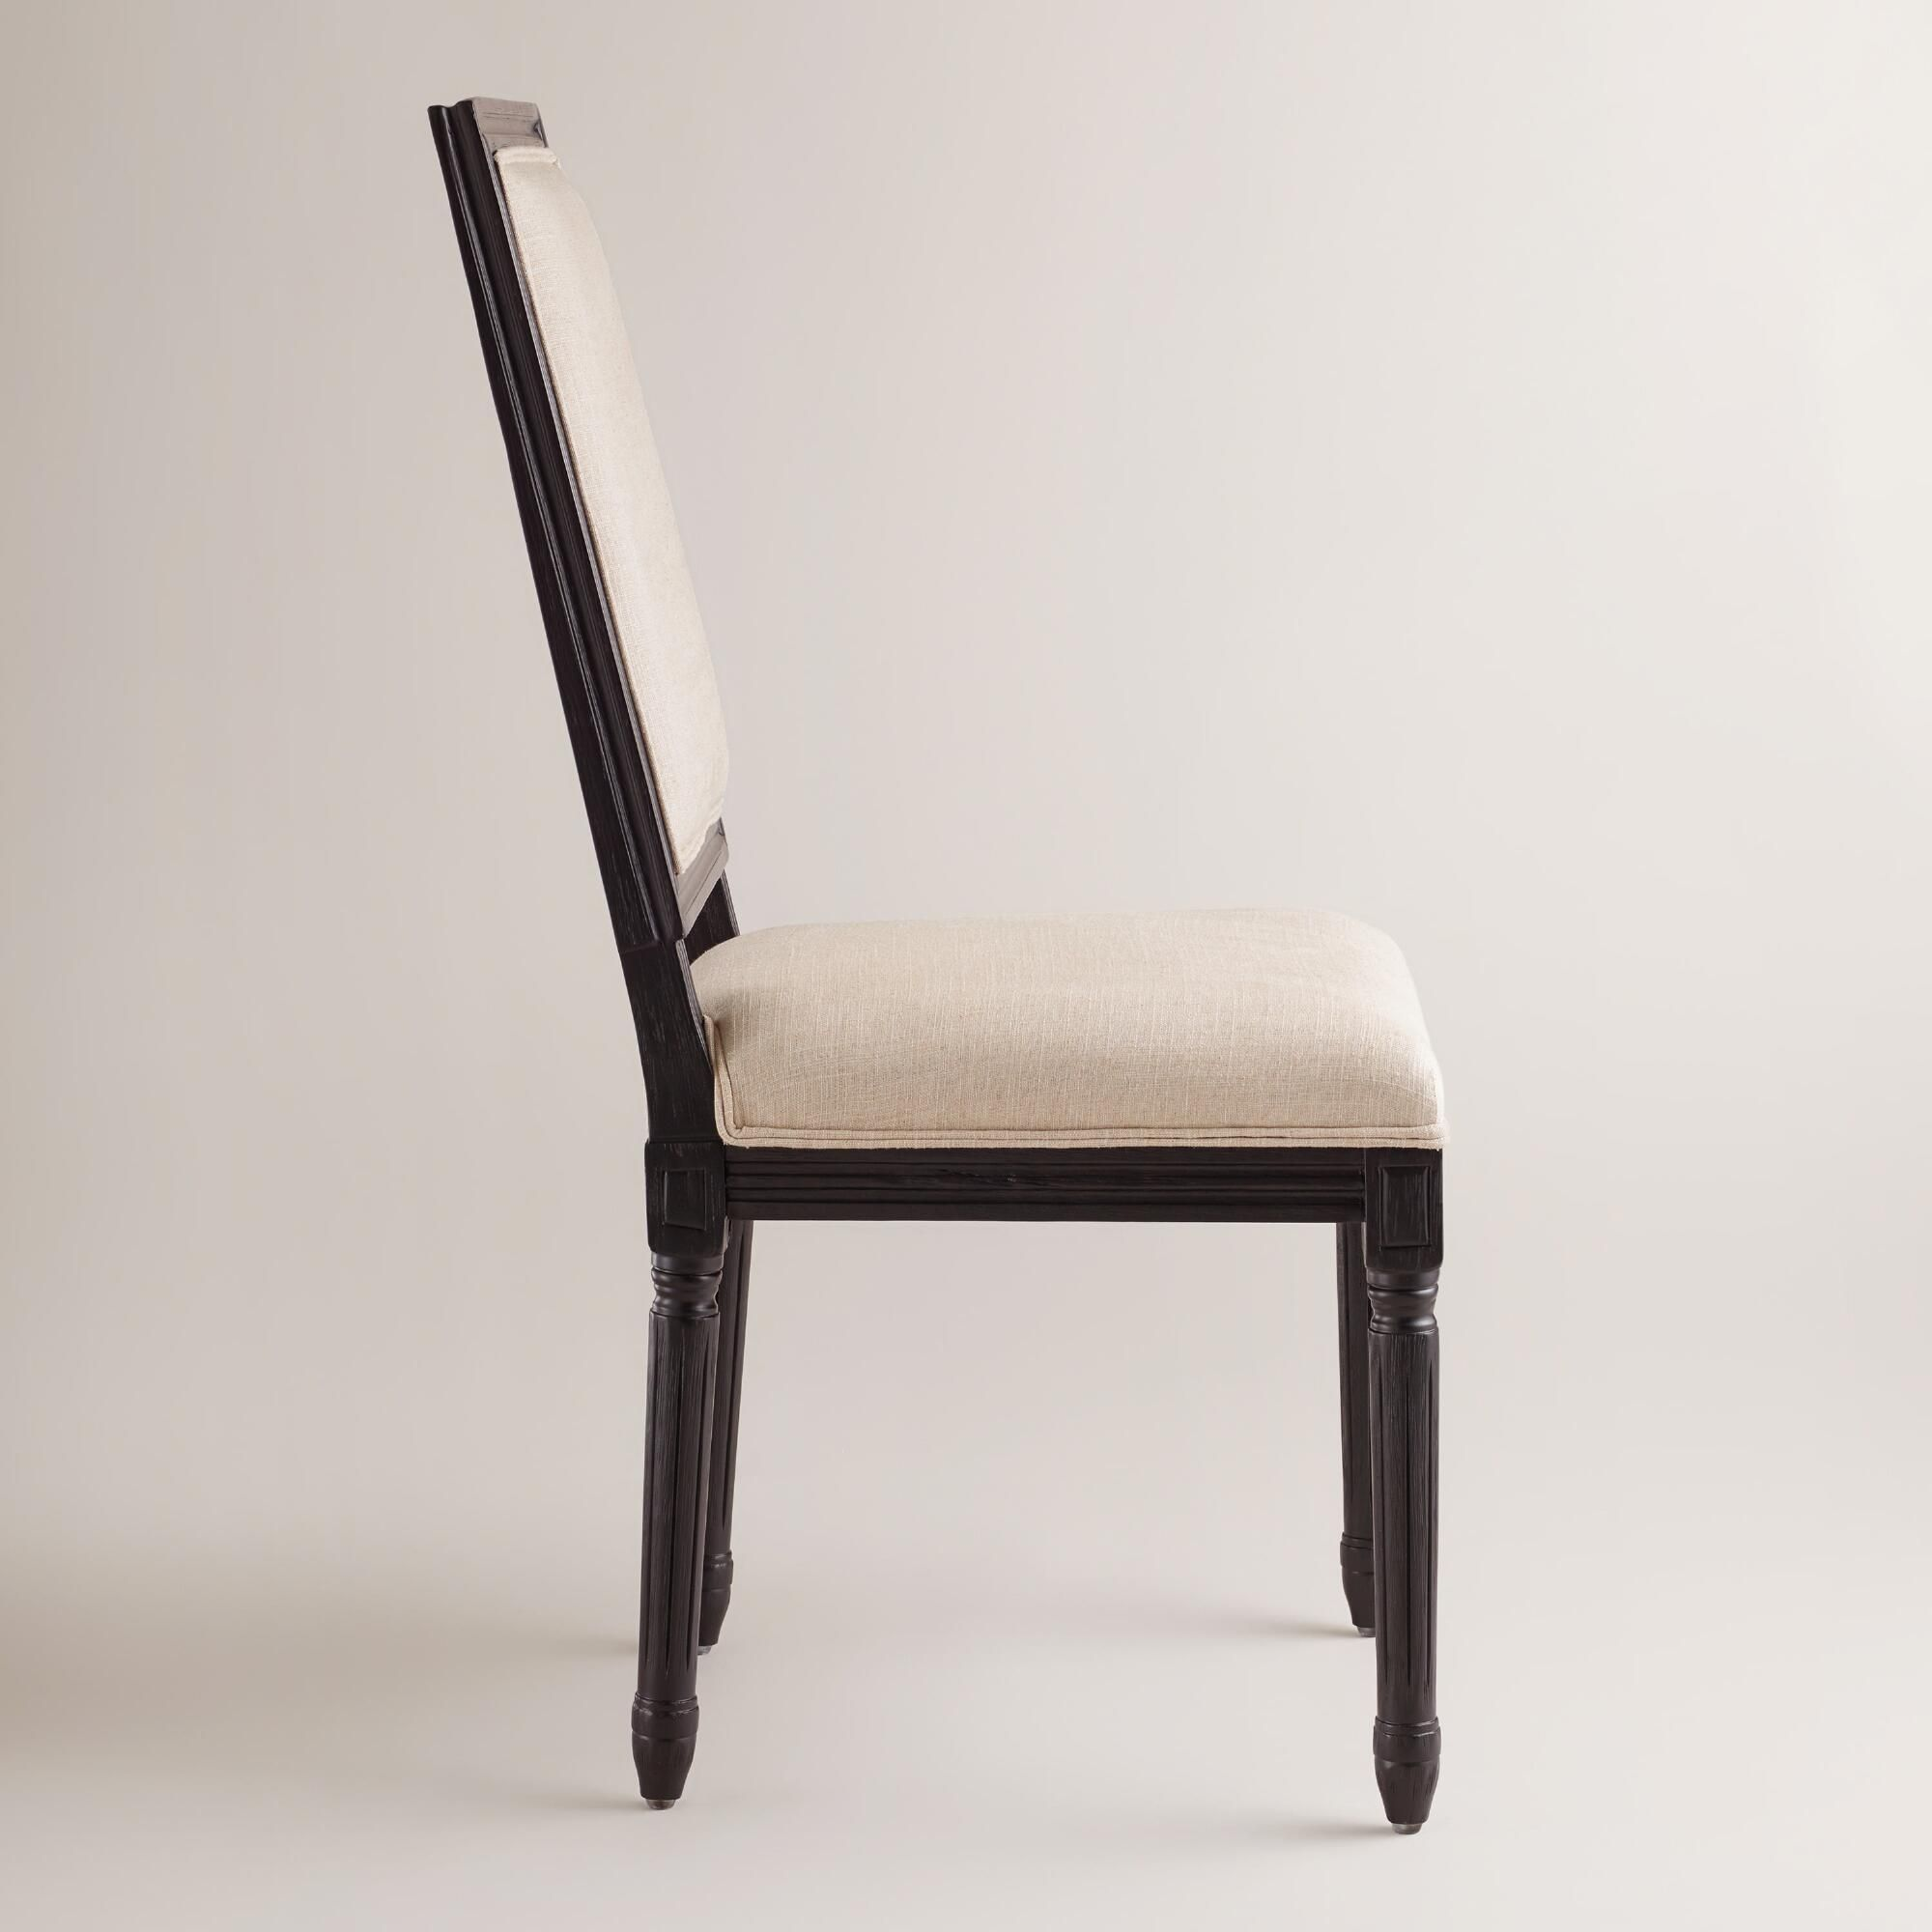 Design Define Silhouette boasting a timeless silhouette our square back dining chairs define elegance crafted of